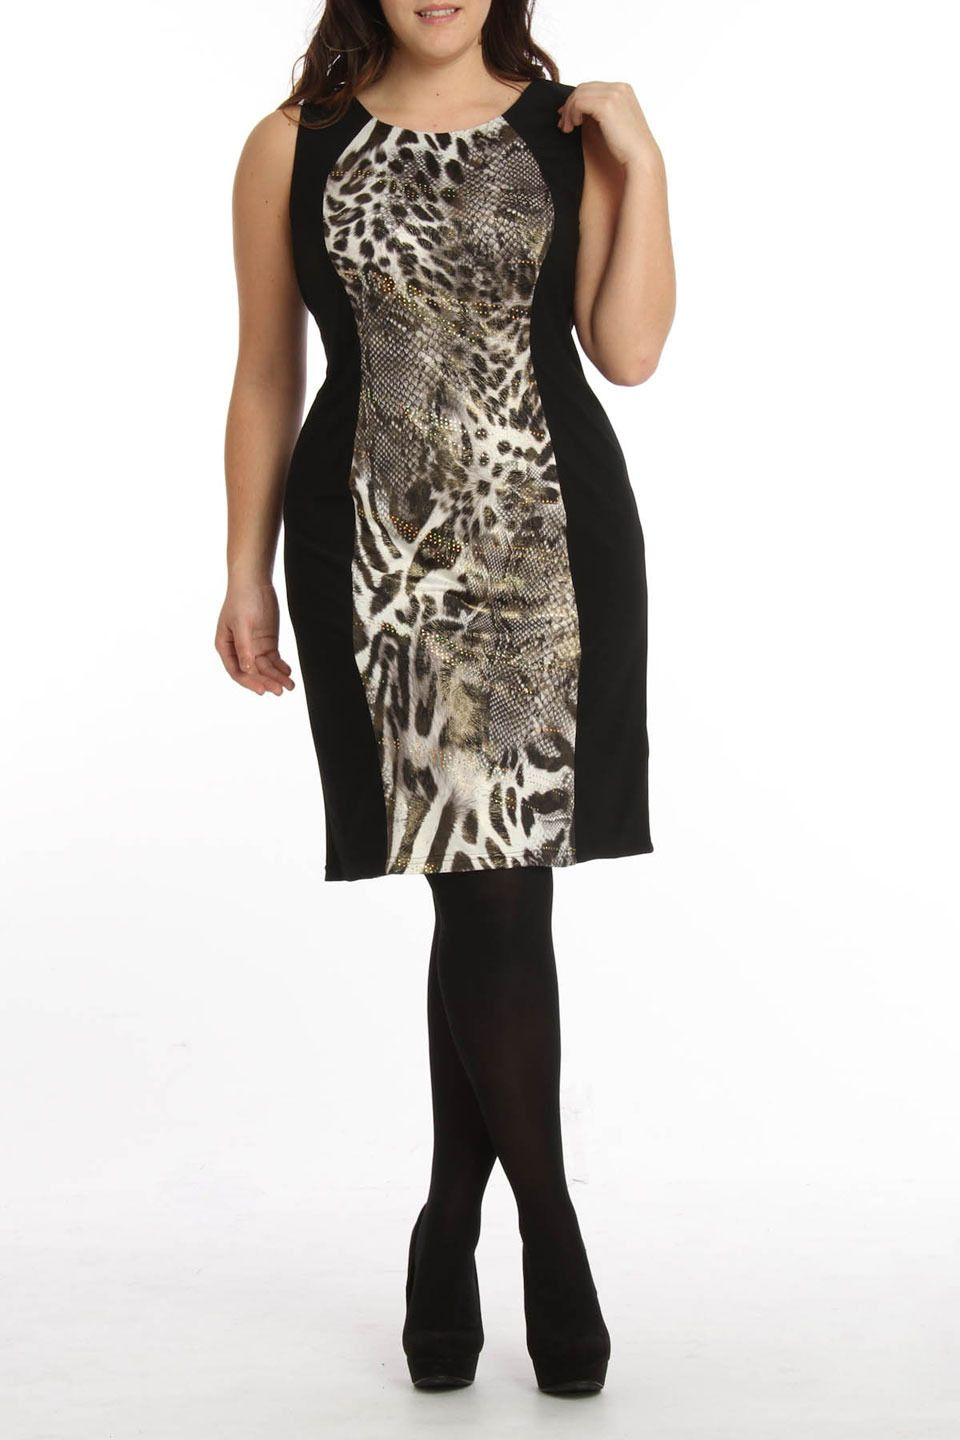 Rm richards alana dress in black and gold beyond the rack my